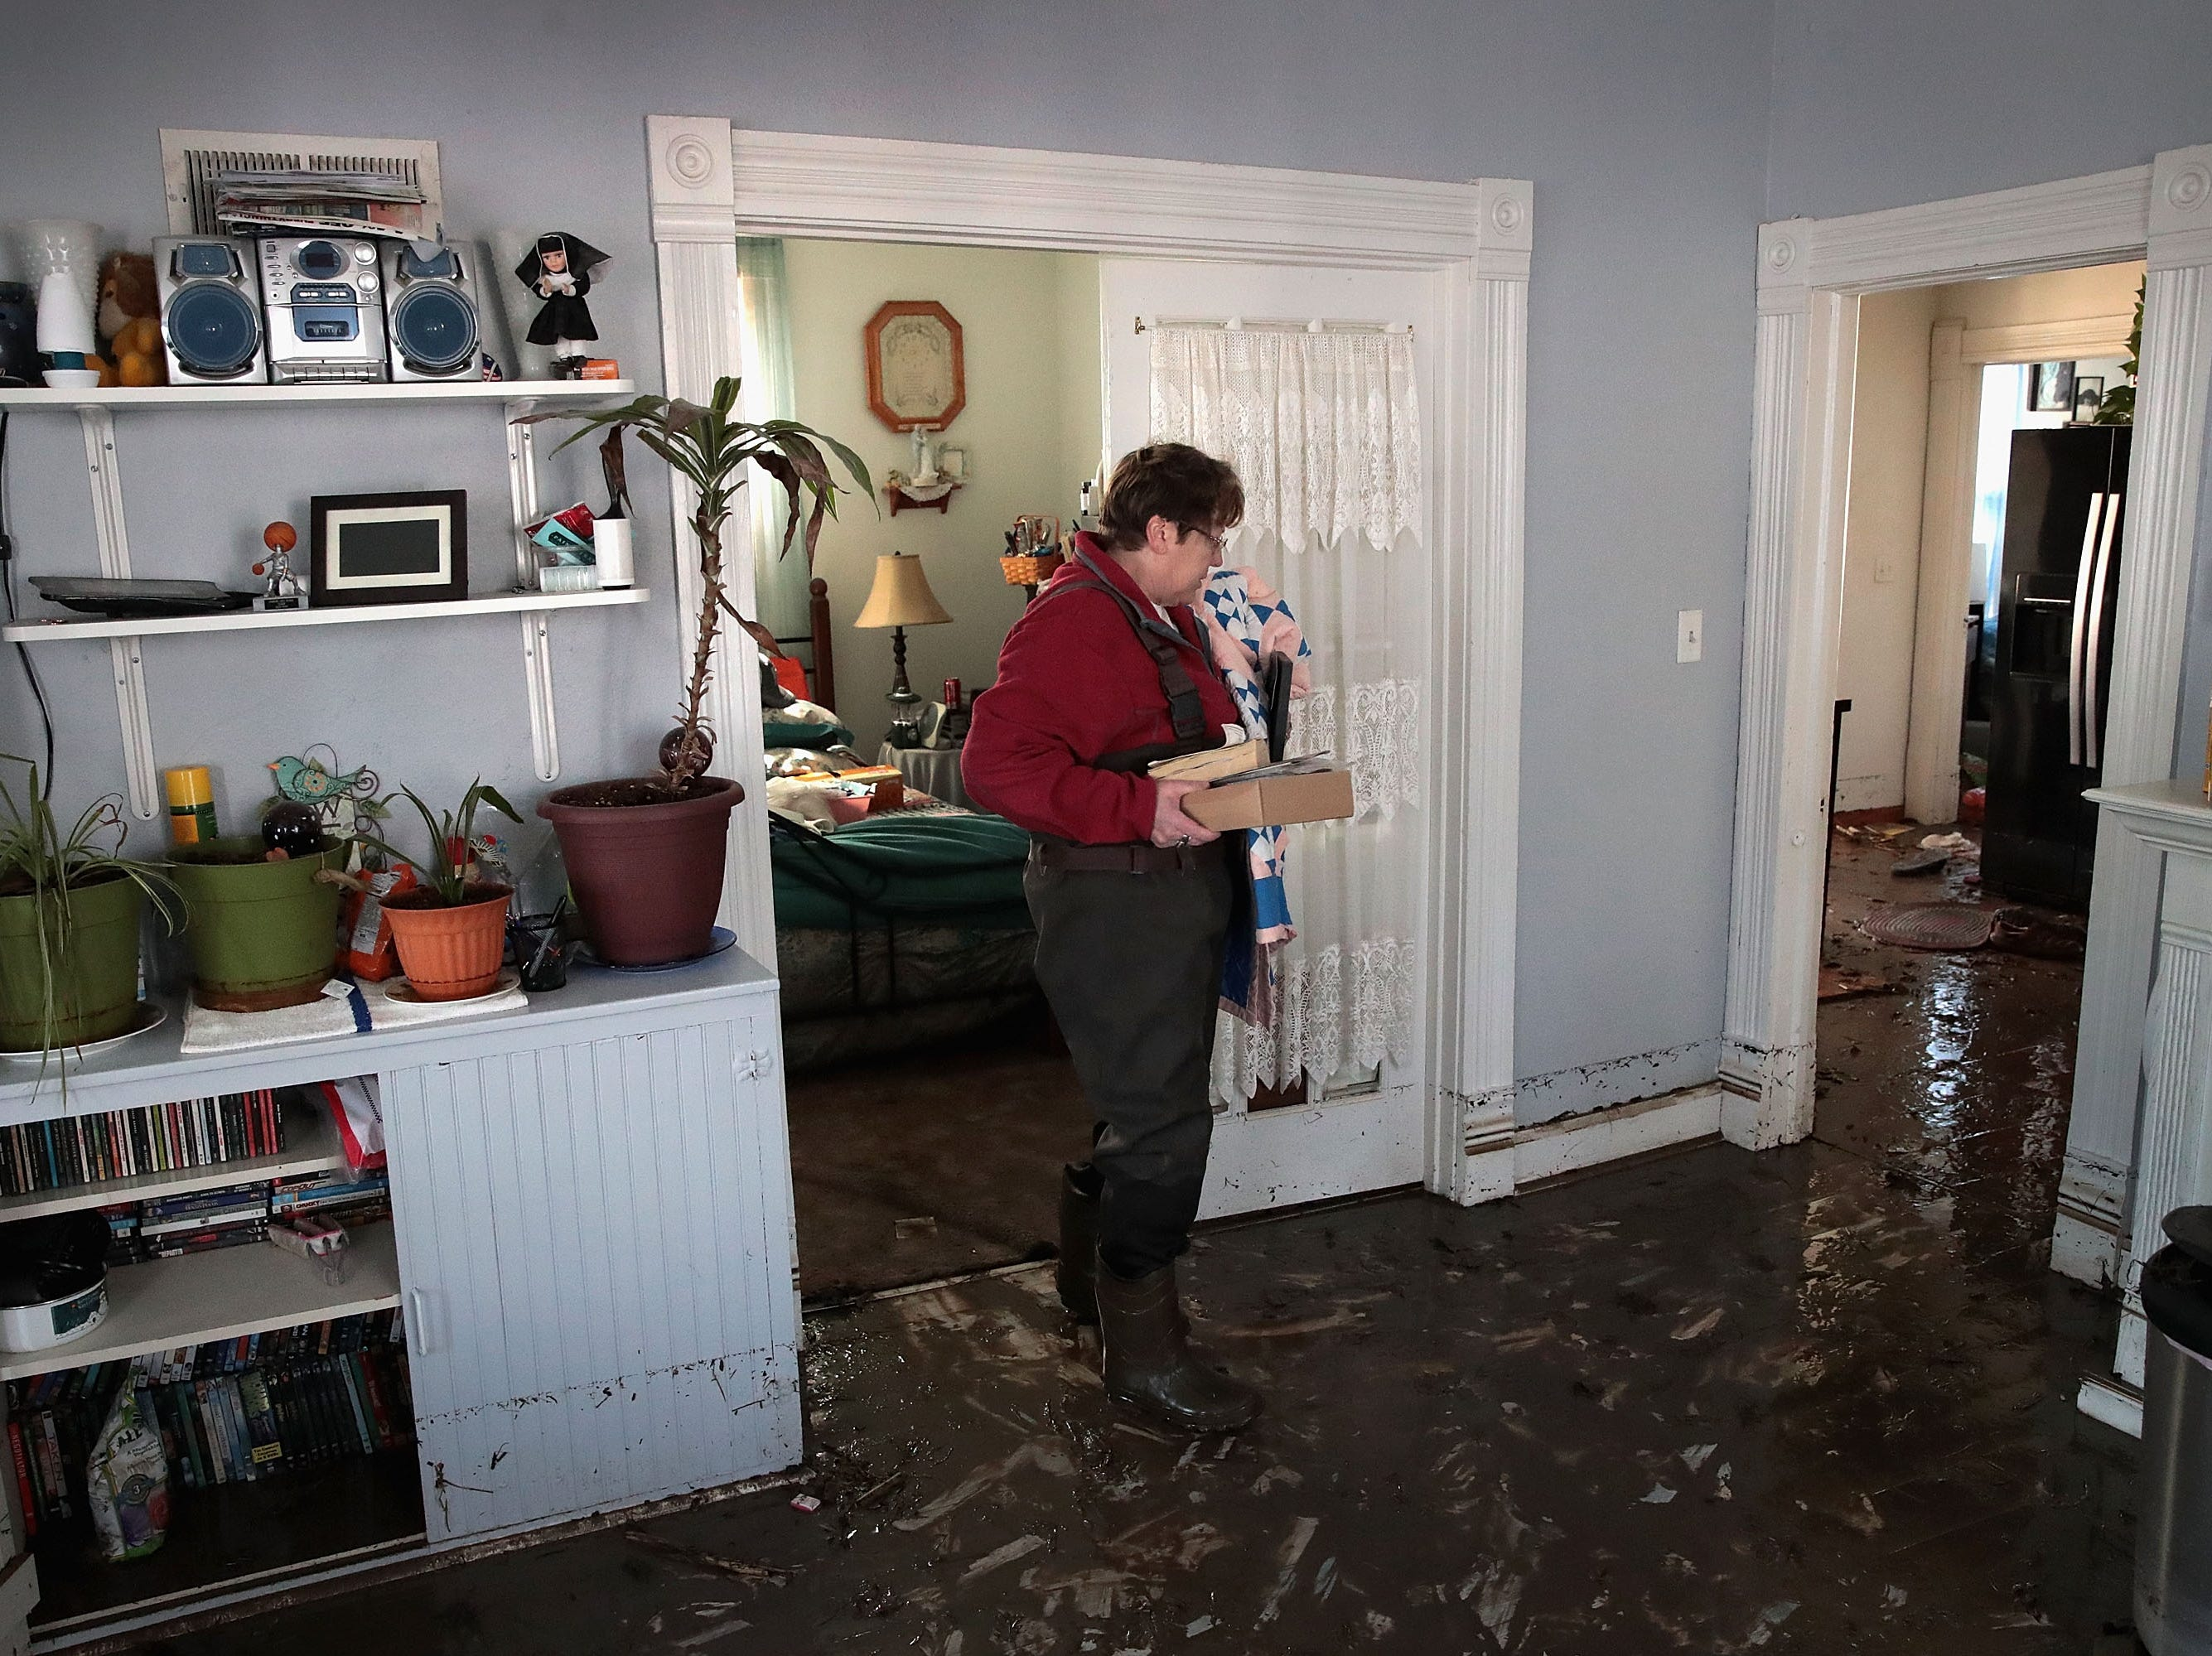 Kathy Drummond recovers items from her flooded home on March 20, 2019 in Hamburg, Iowa.